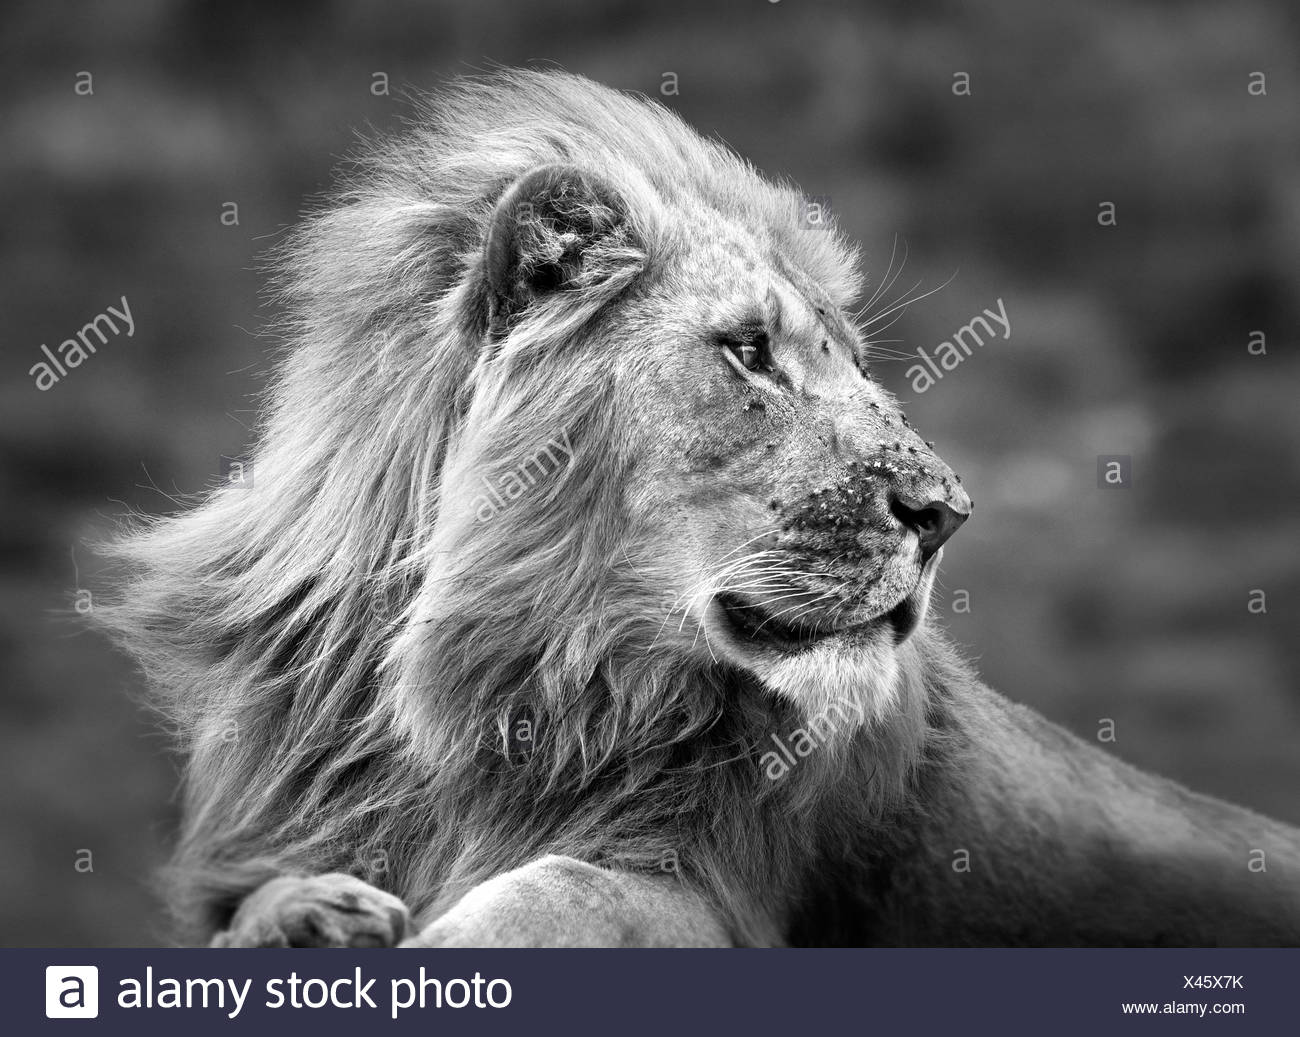 Portrait du lion en Afrique, Afrique du Sud Photo Stock